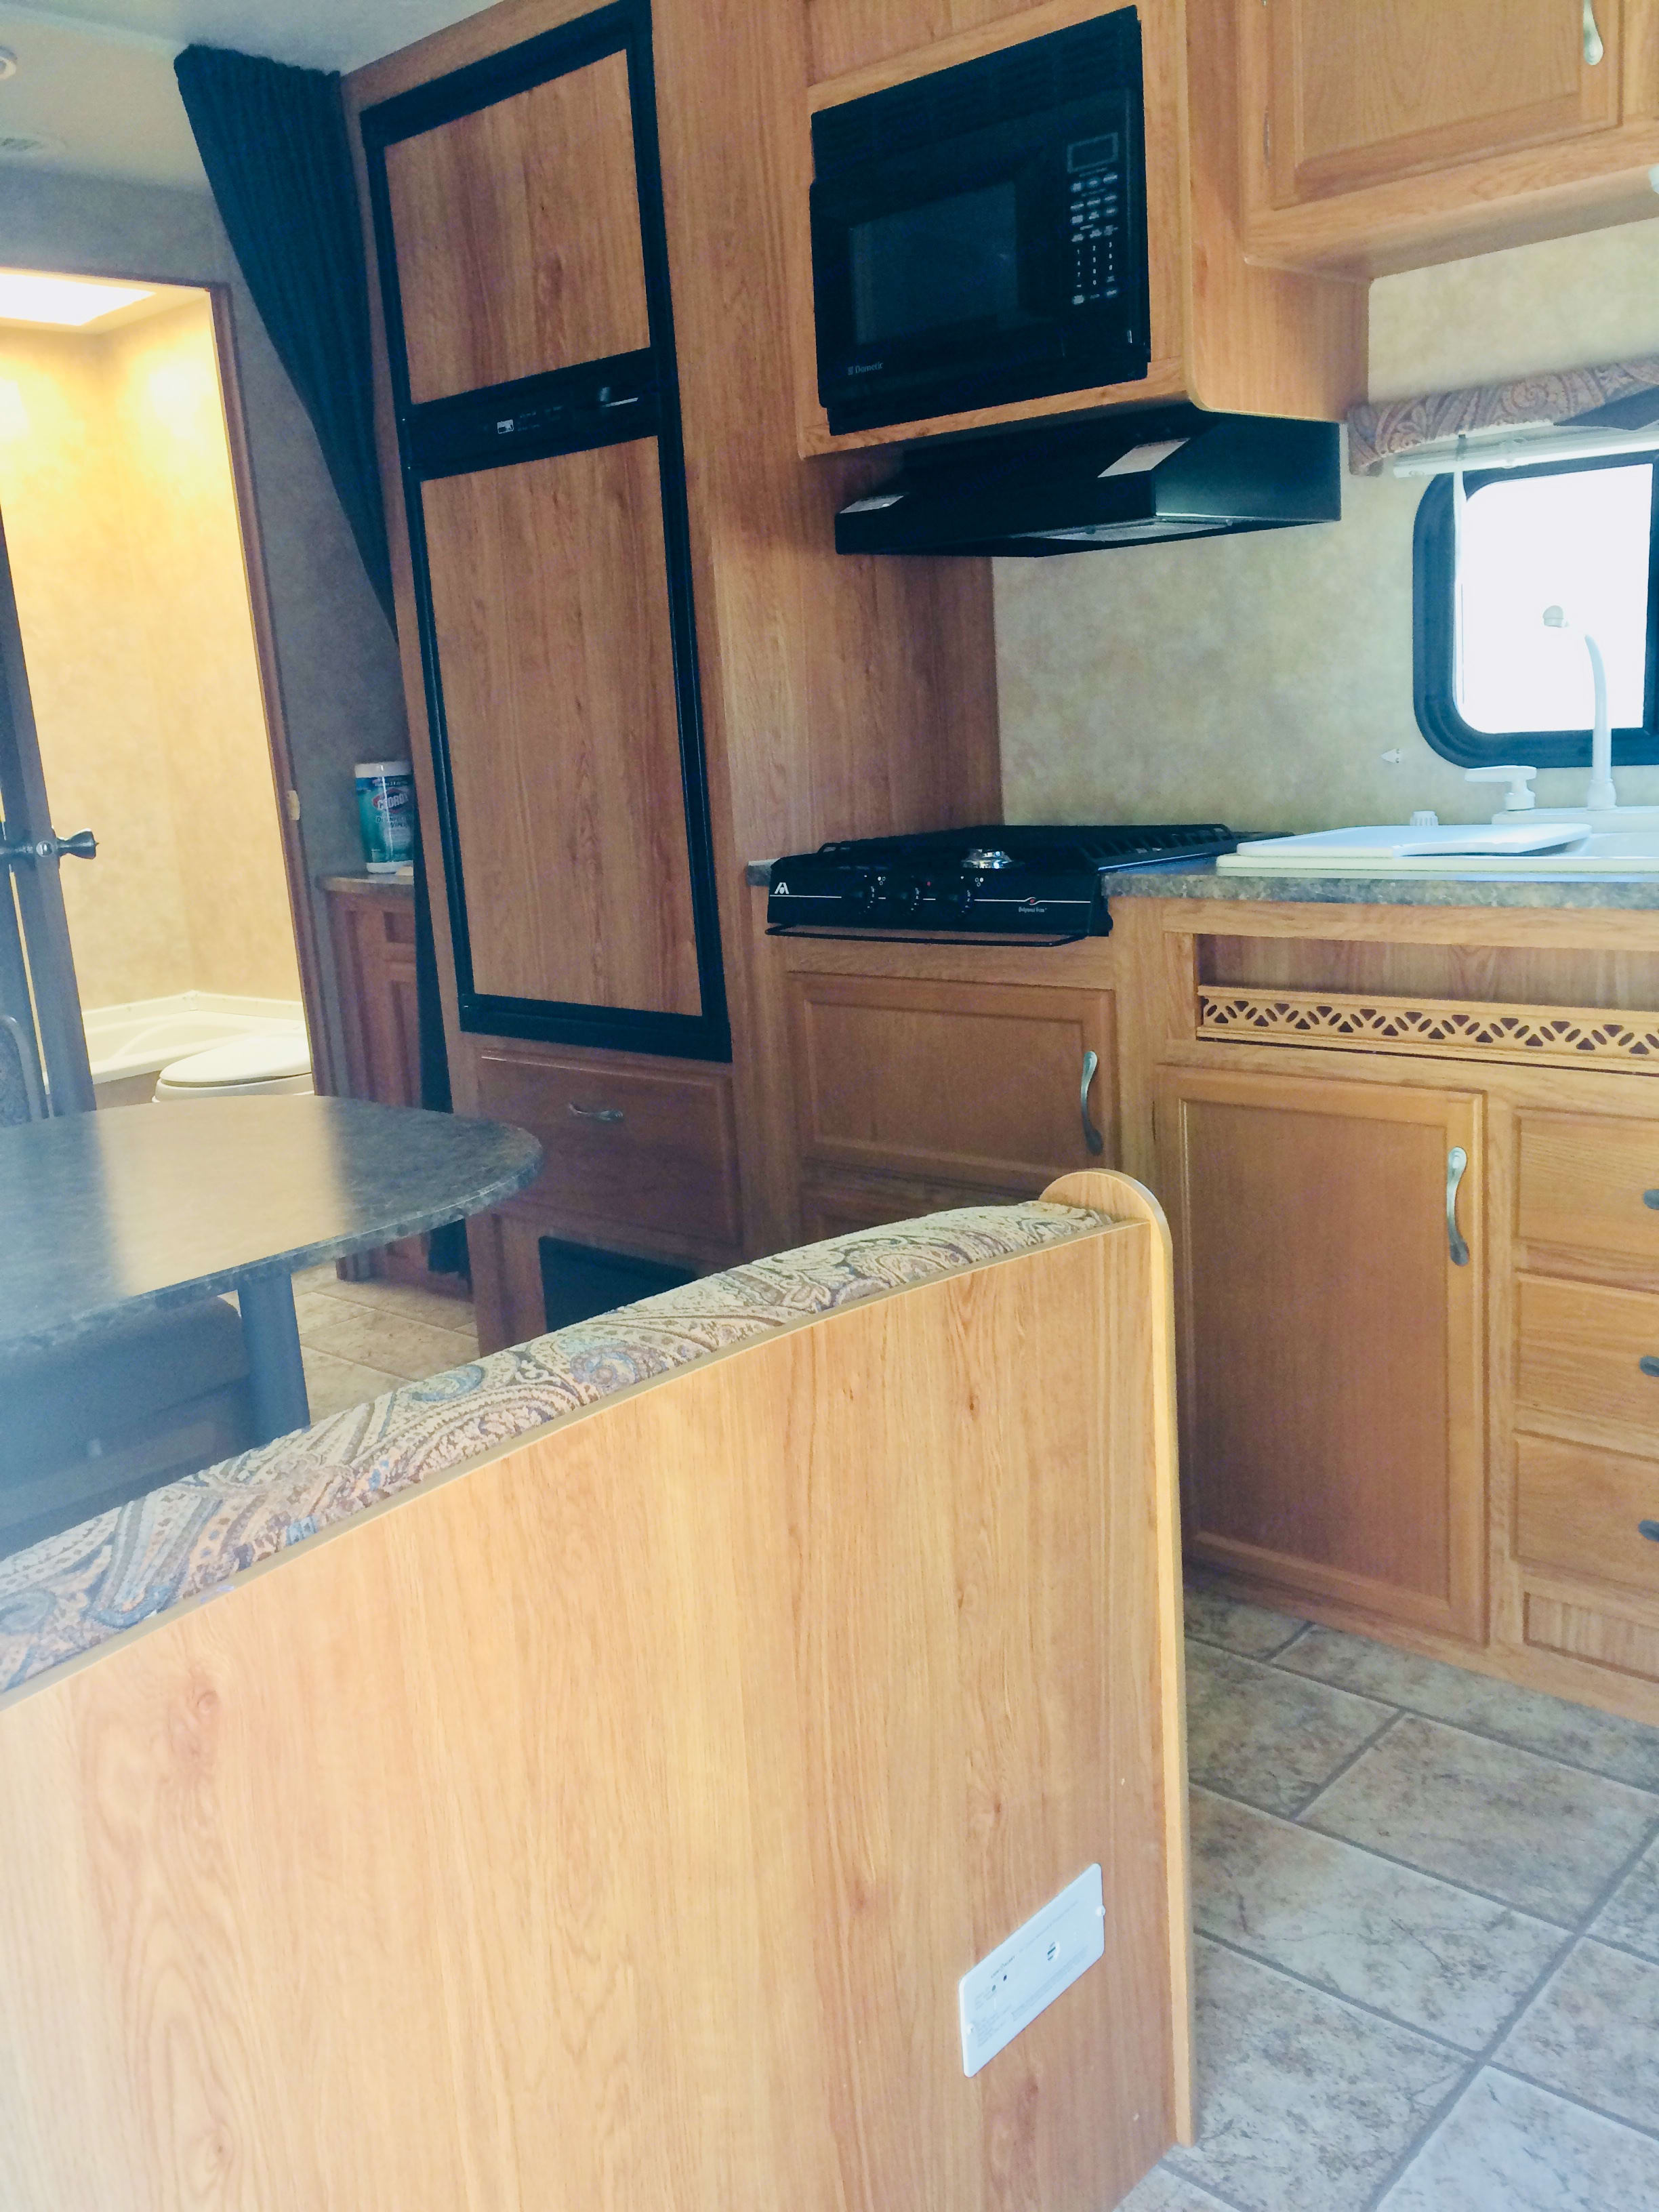 Fridge and freezer provide ample space for food and drink. Kitchen really clean and east to use.. Jayco Jay Flight 26BH 2010